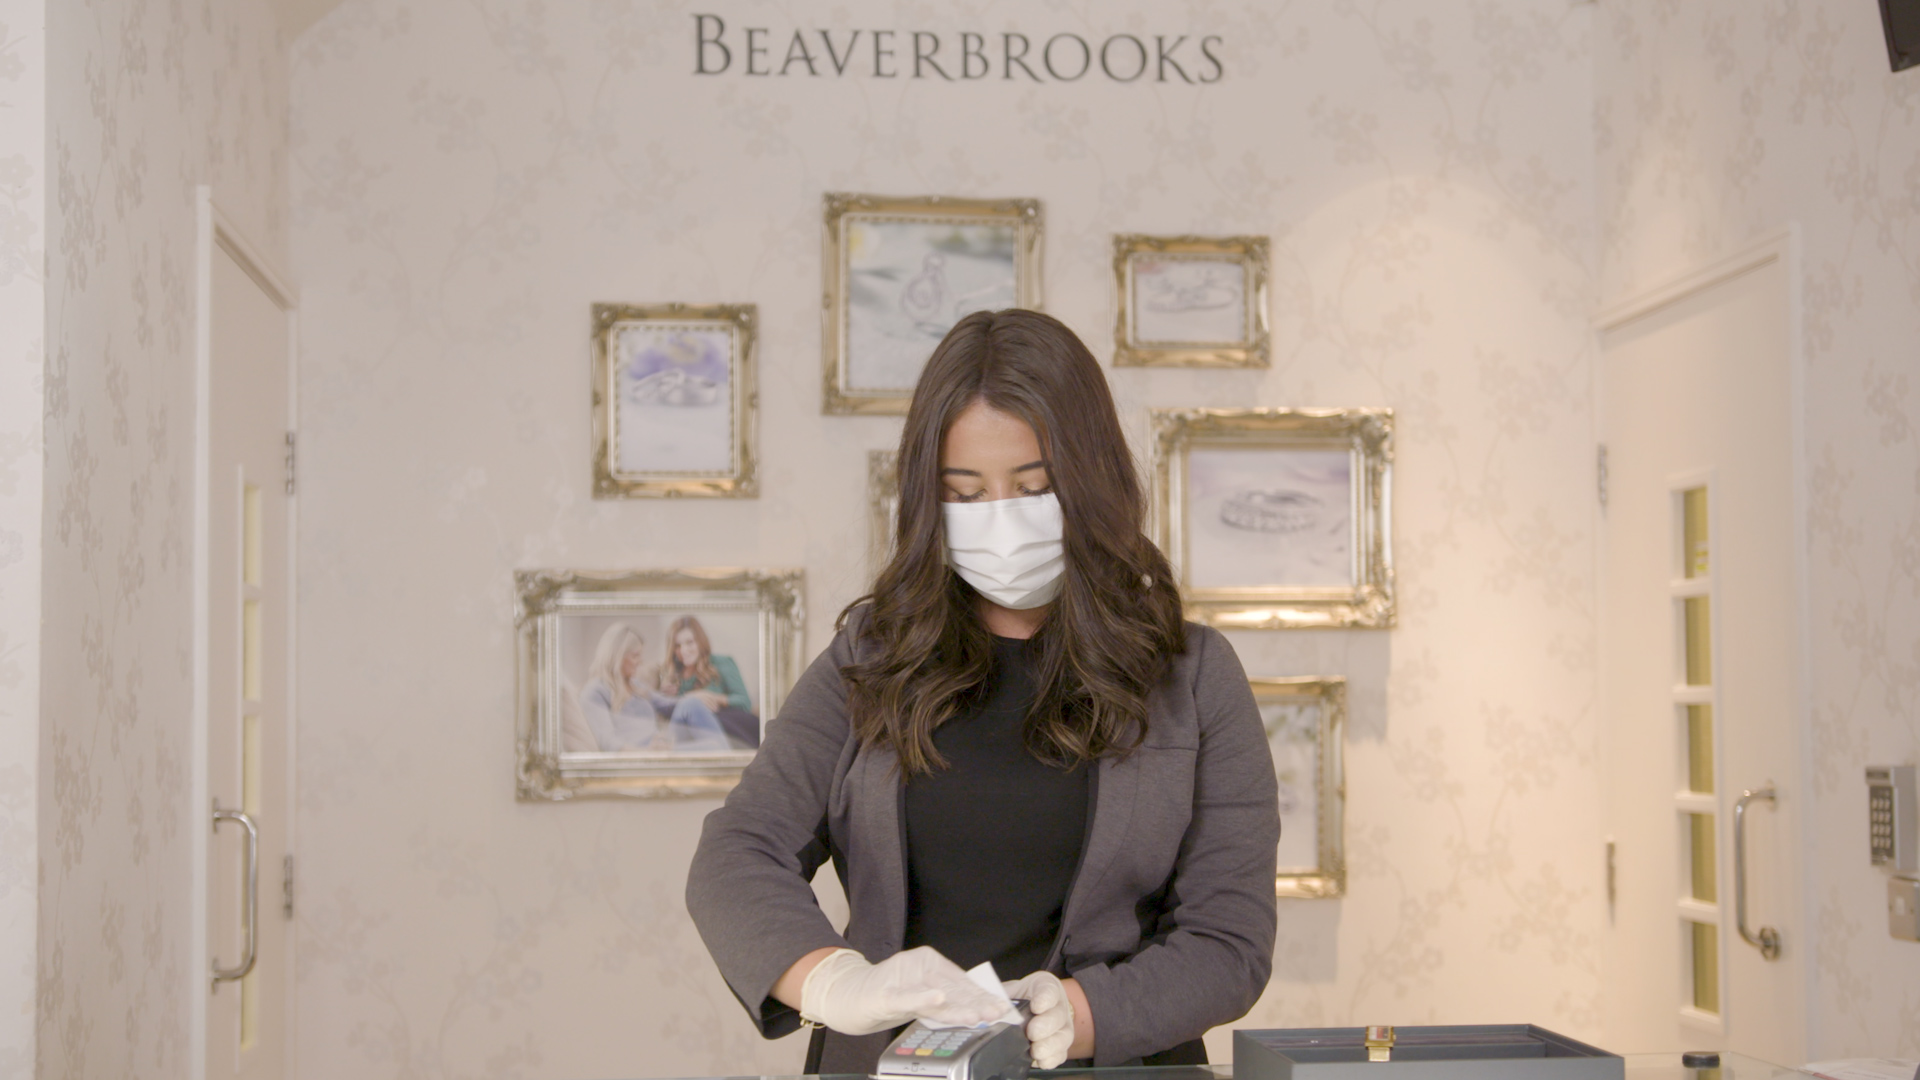 Beaverbrooks in Aberdeen will reopen on Monday